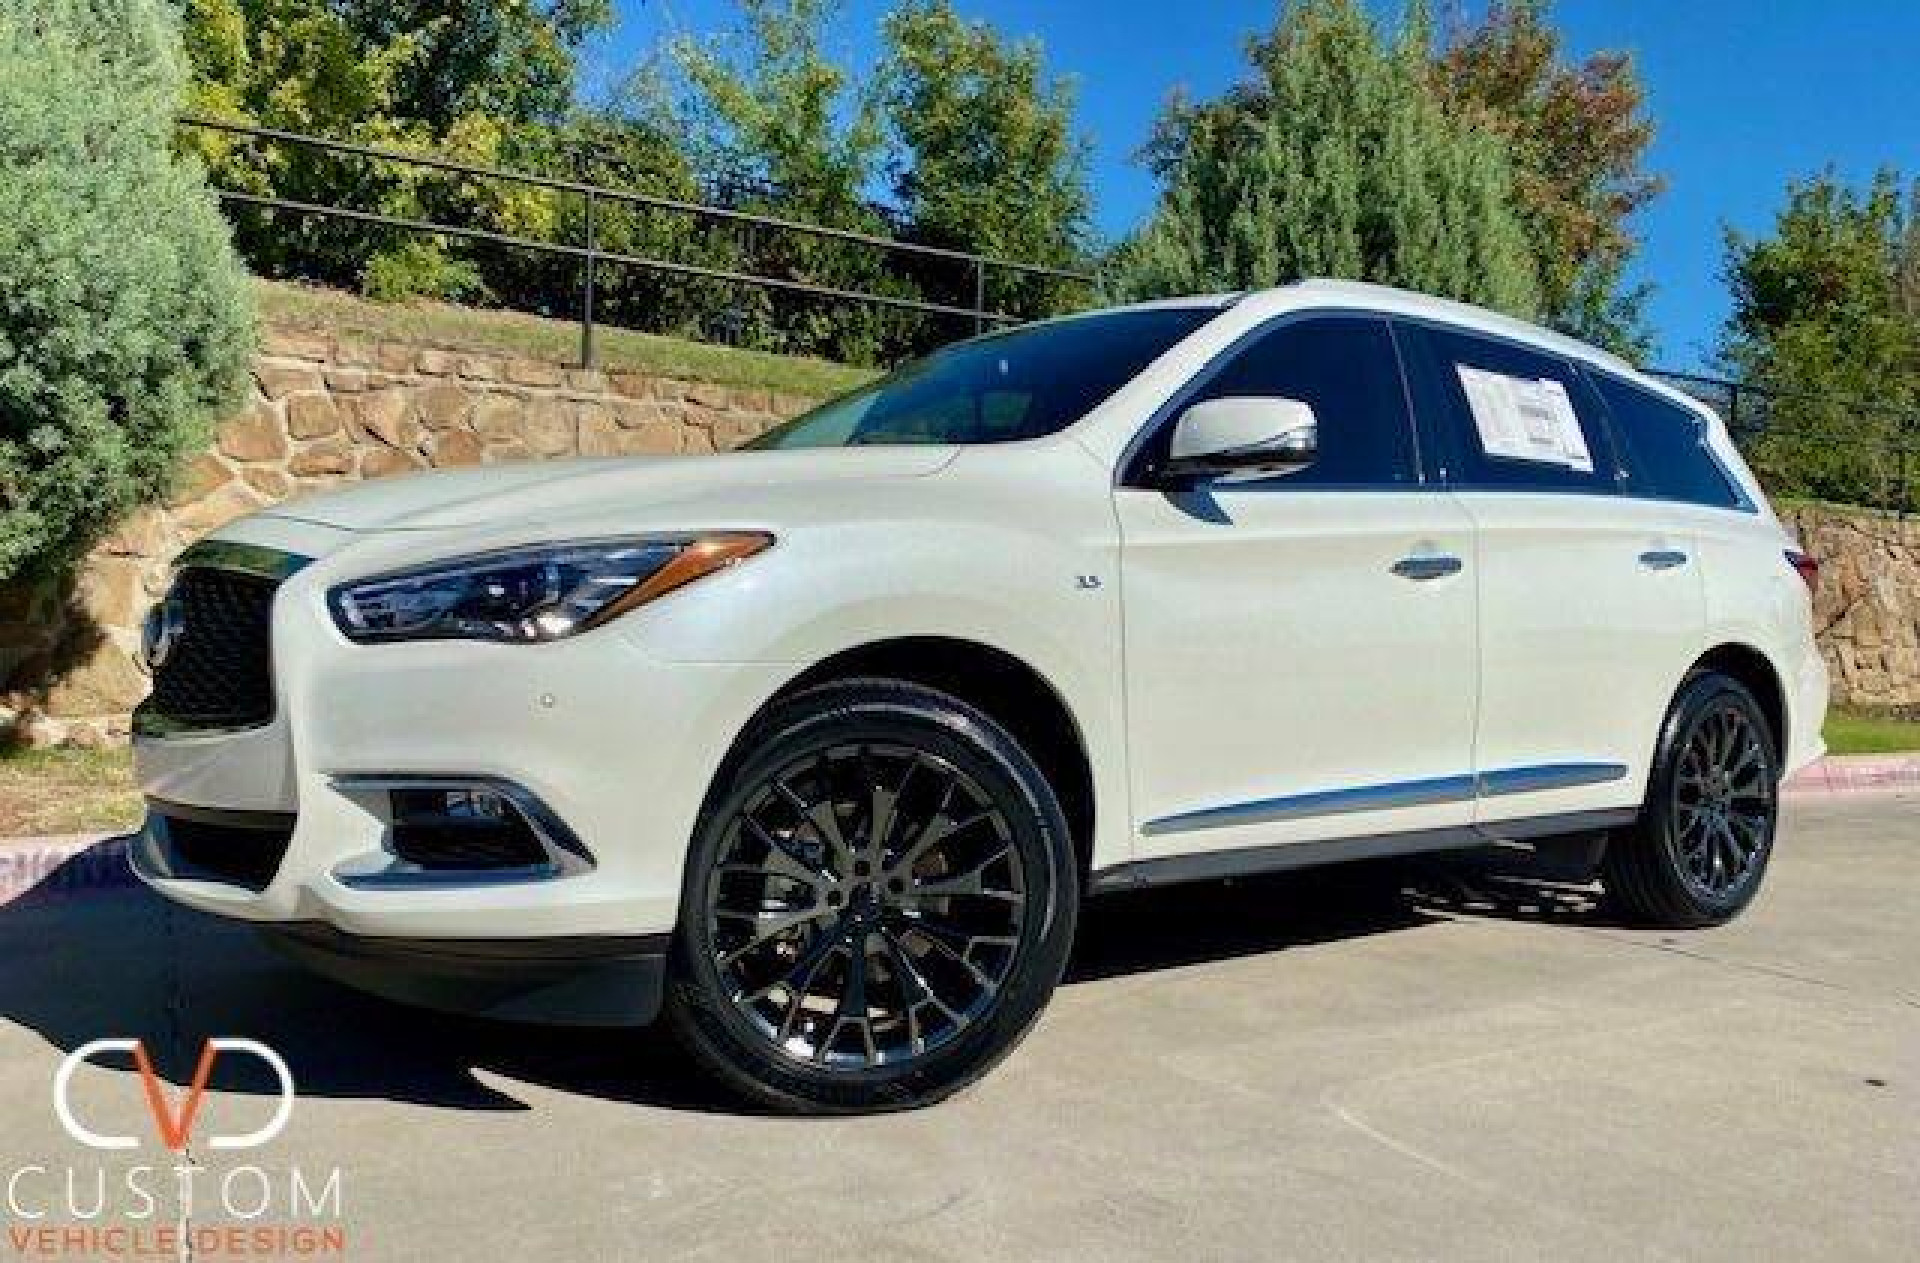 2020 Infiniti QX60 with Vogue VT383 wheels & tyres